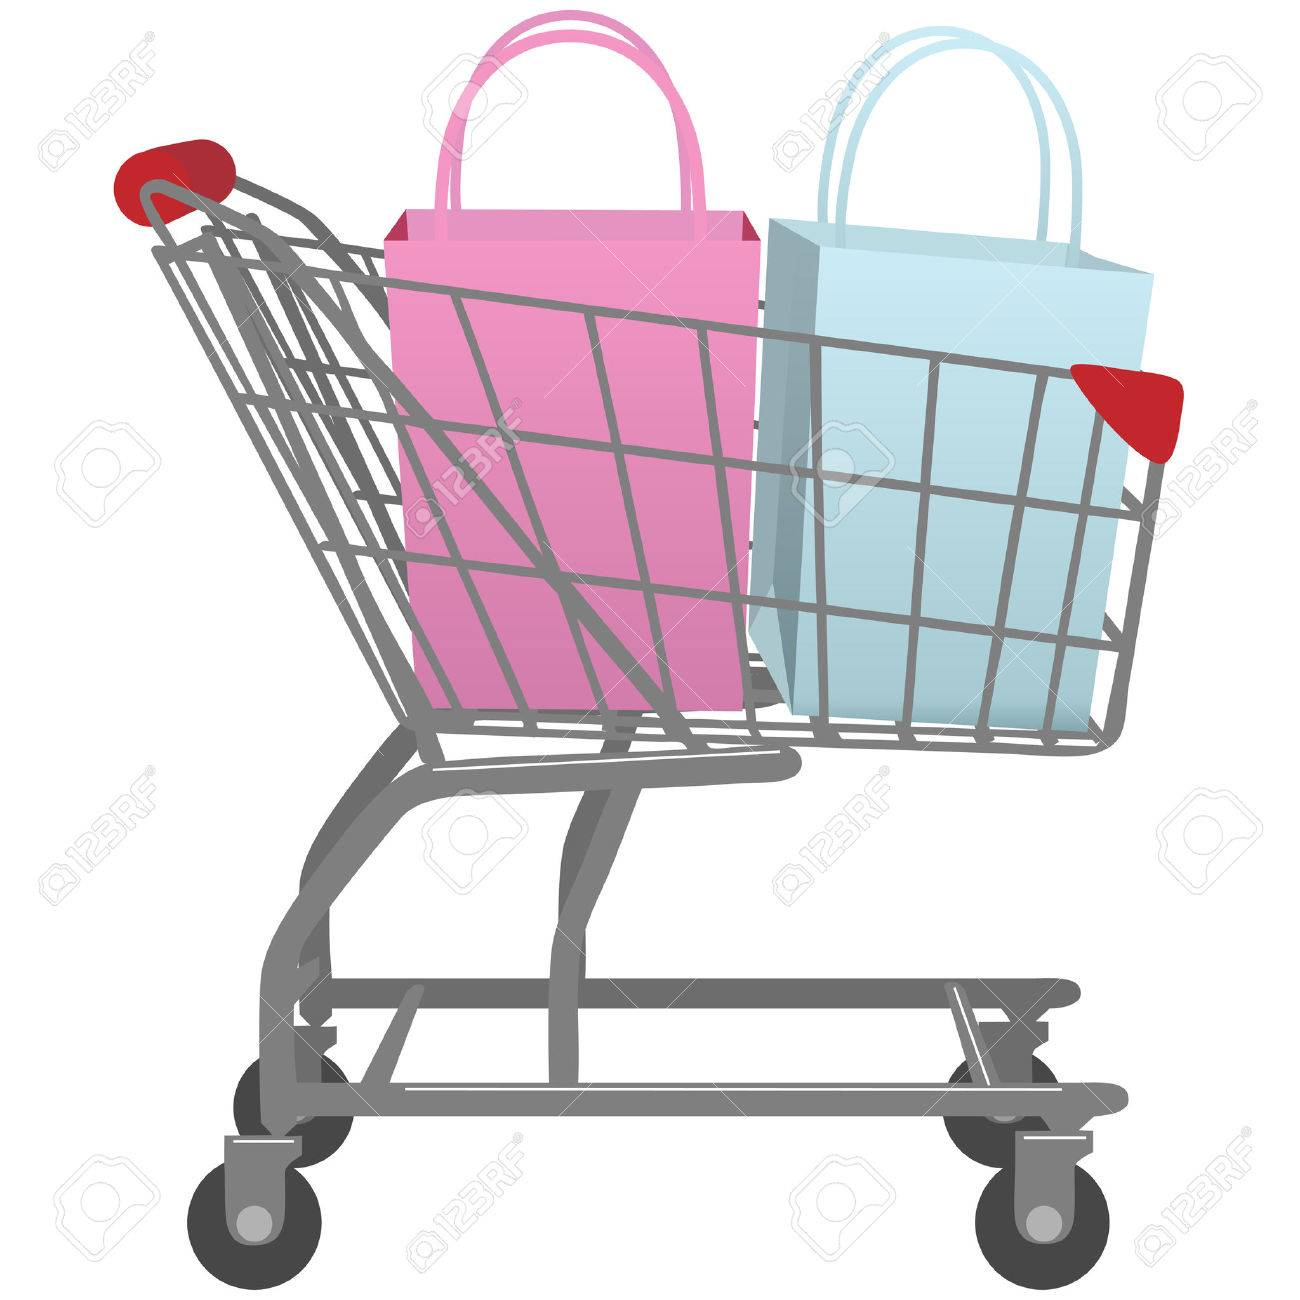 A Shopping Cart Carrying Two Shopping Bags One Pink Bag One Blue ...